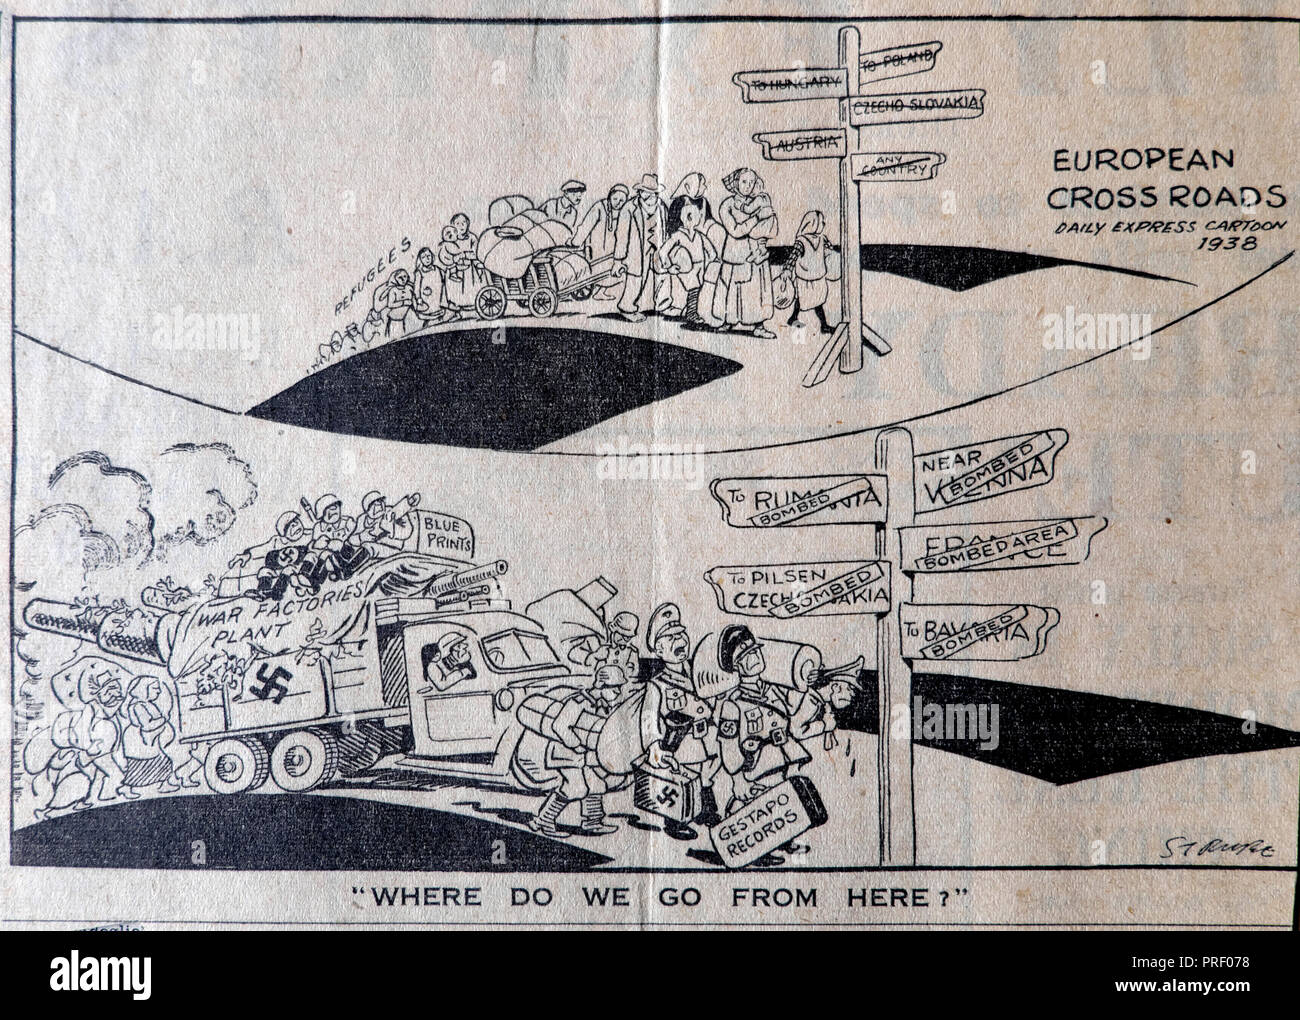 WWII Daily Express cartoon 1938 'European Crossroads' queue of Second World War refugees and Nazi military war machine London UK  historical archive - Stock Image